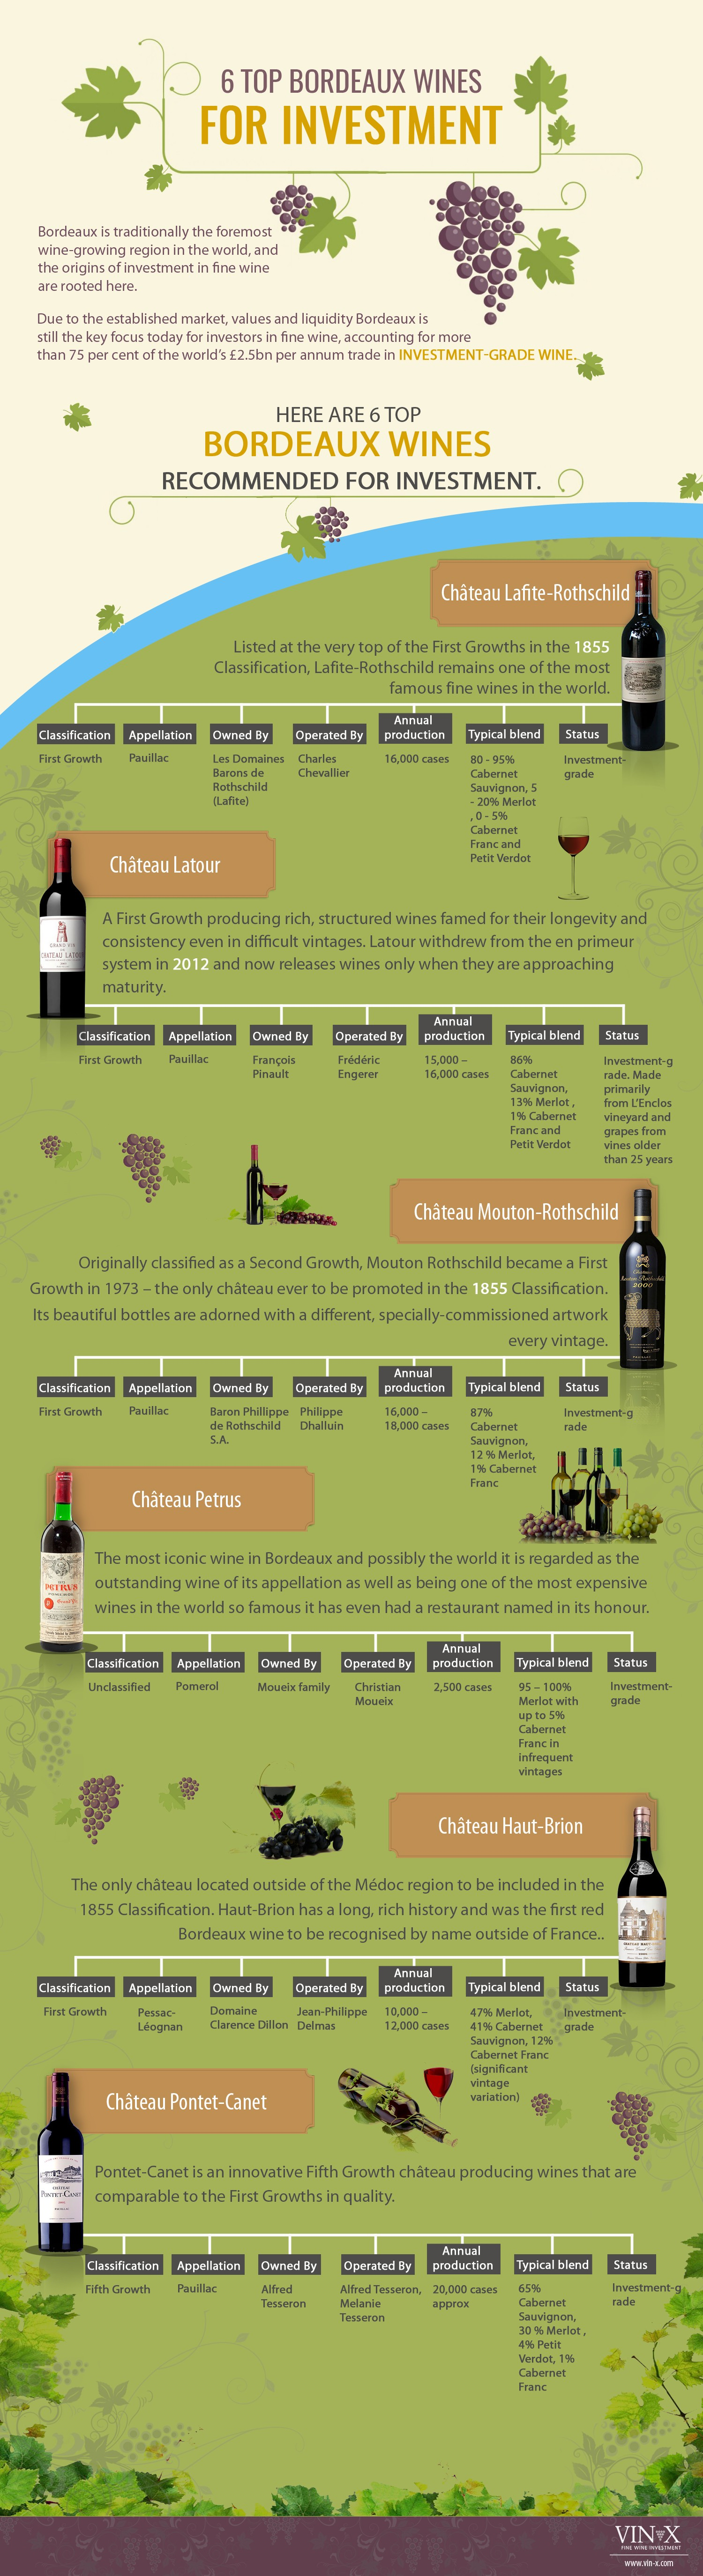 6 Top Wine Investment Picks from Bordeaux